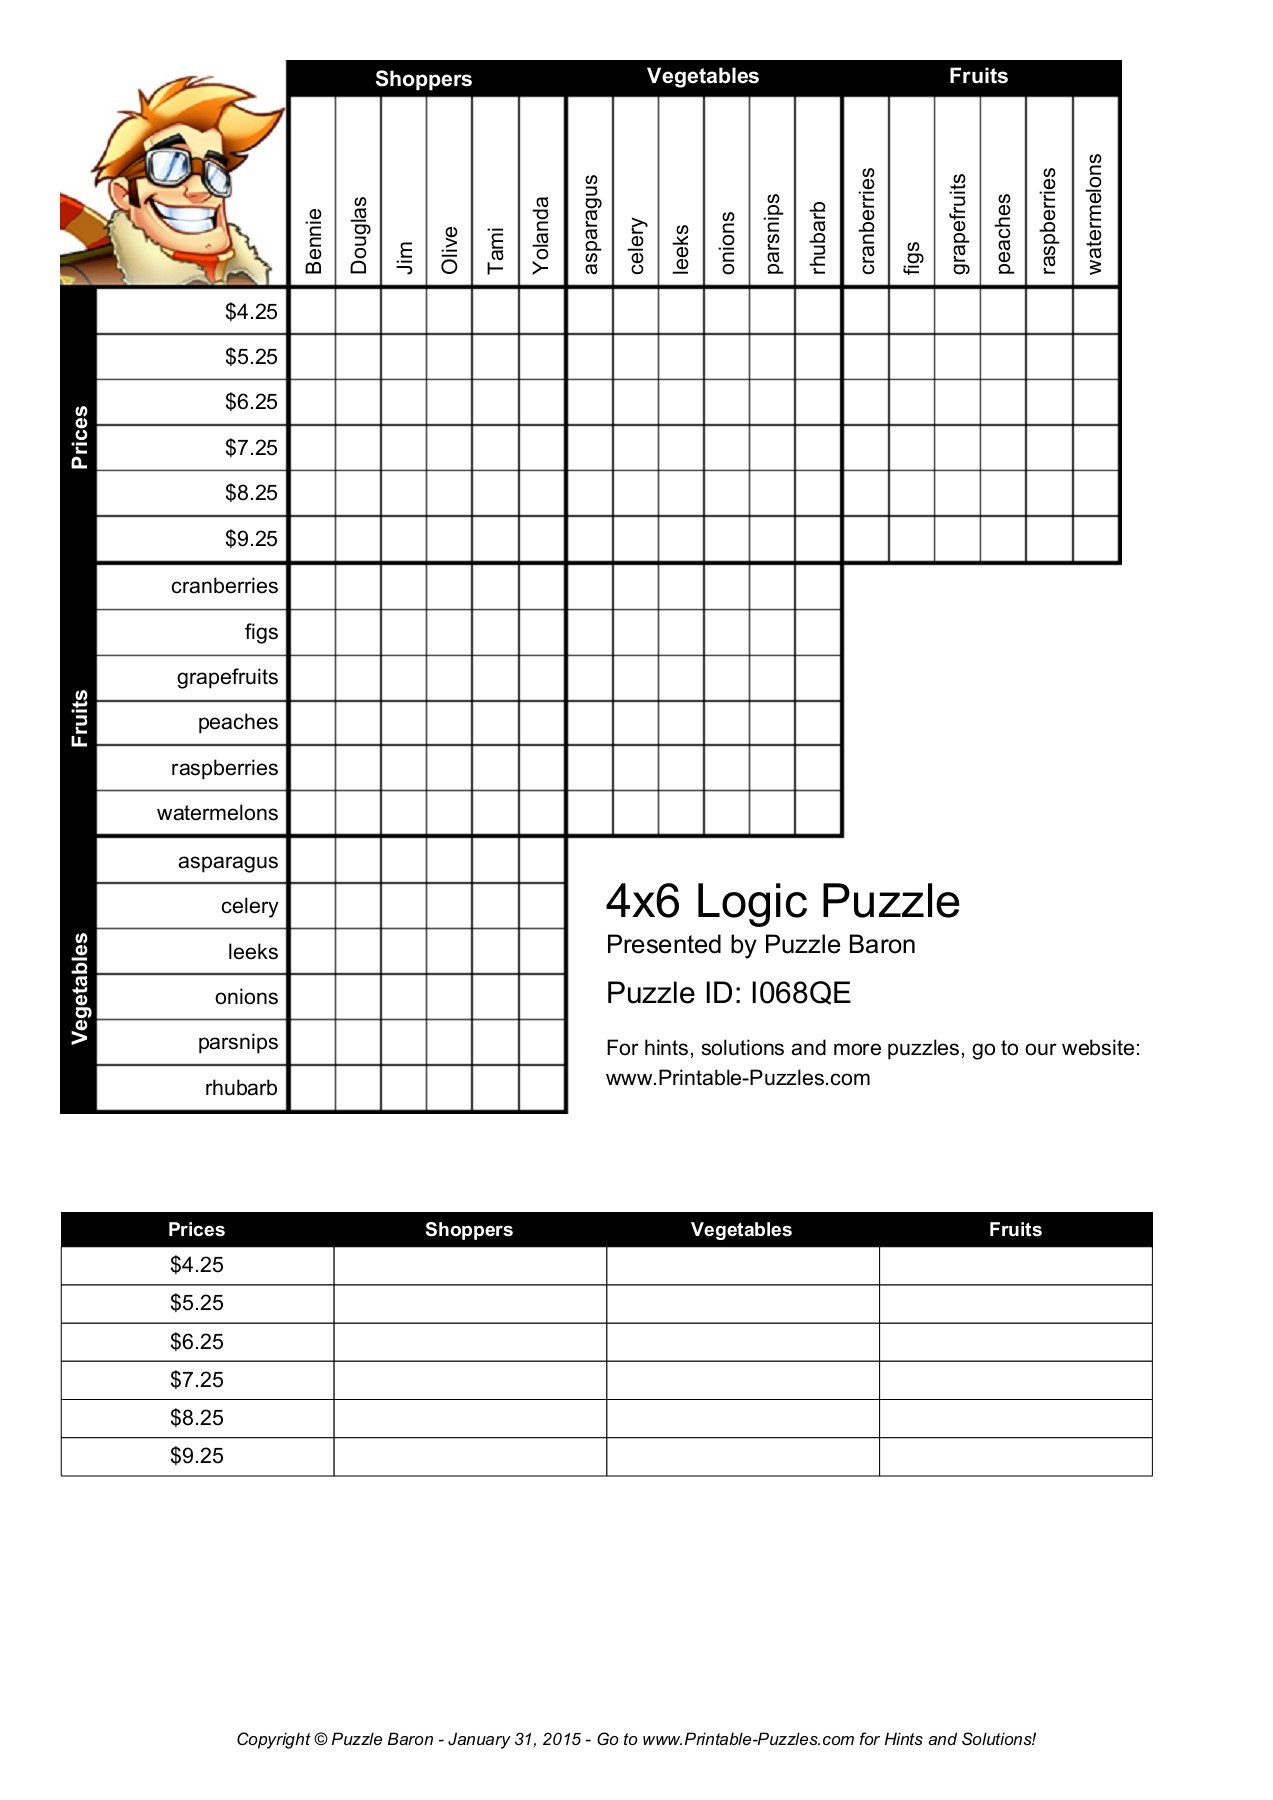 4X6 Logic Puzzle - Logic Puzzles - Play Online Or Print  Pages 1 - Printable Logic Puzzles Online